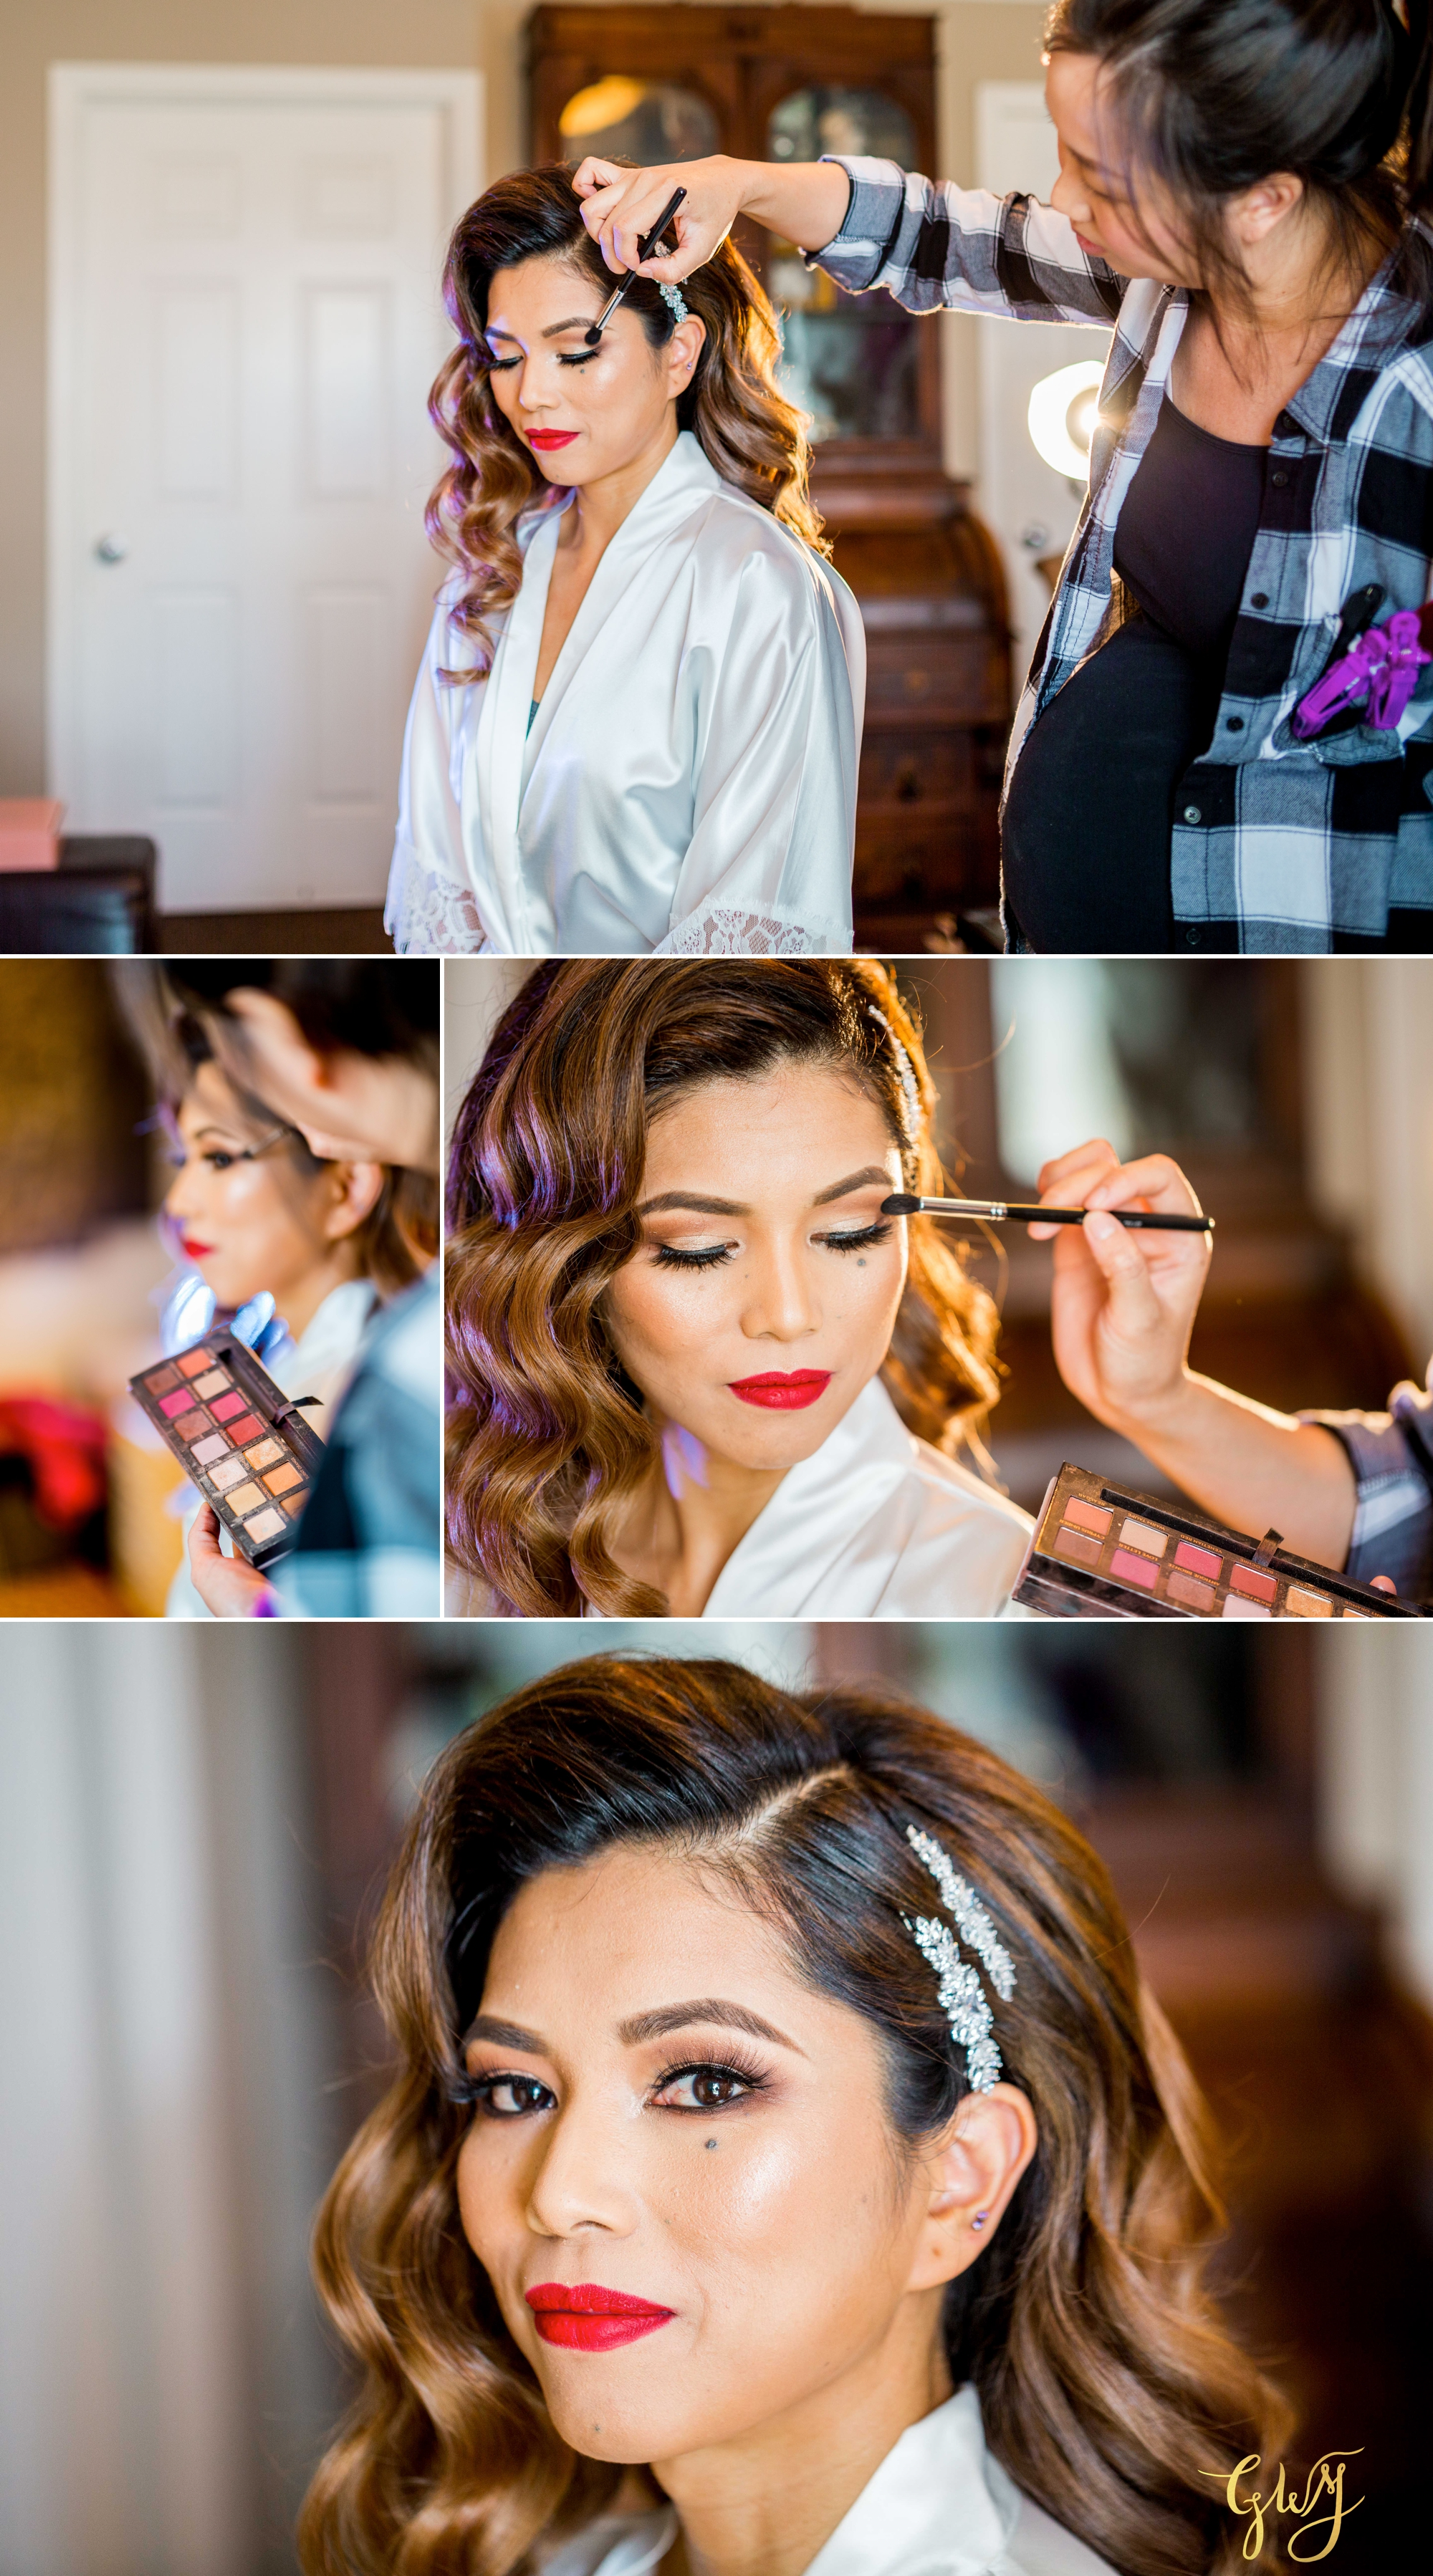 Andy + Caselyn's White House Event Center Orange County Spring Wedding by Glass Woods Media 4.jpg